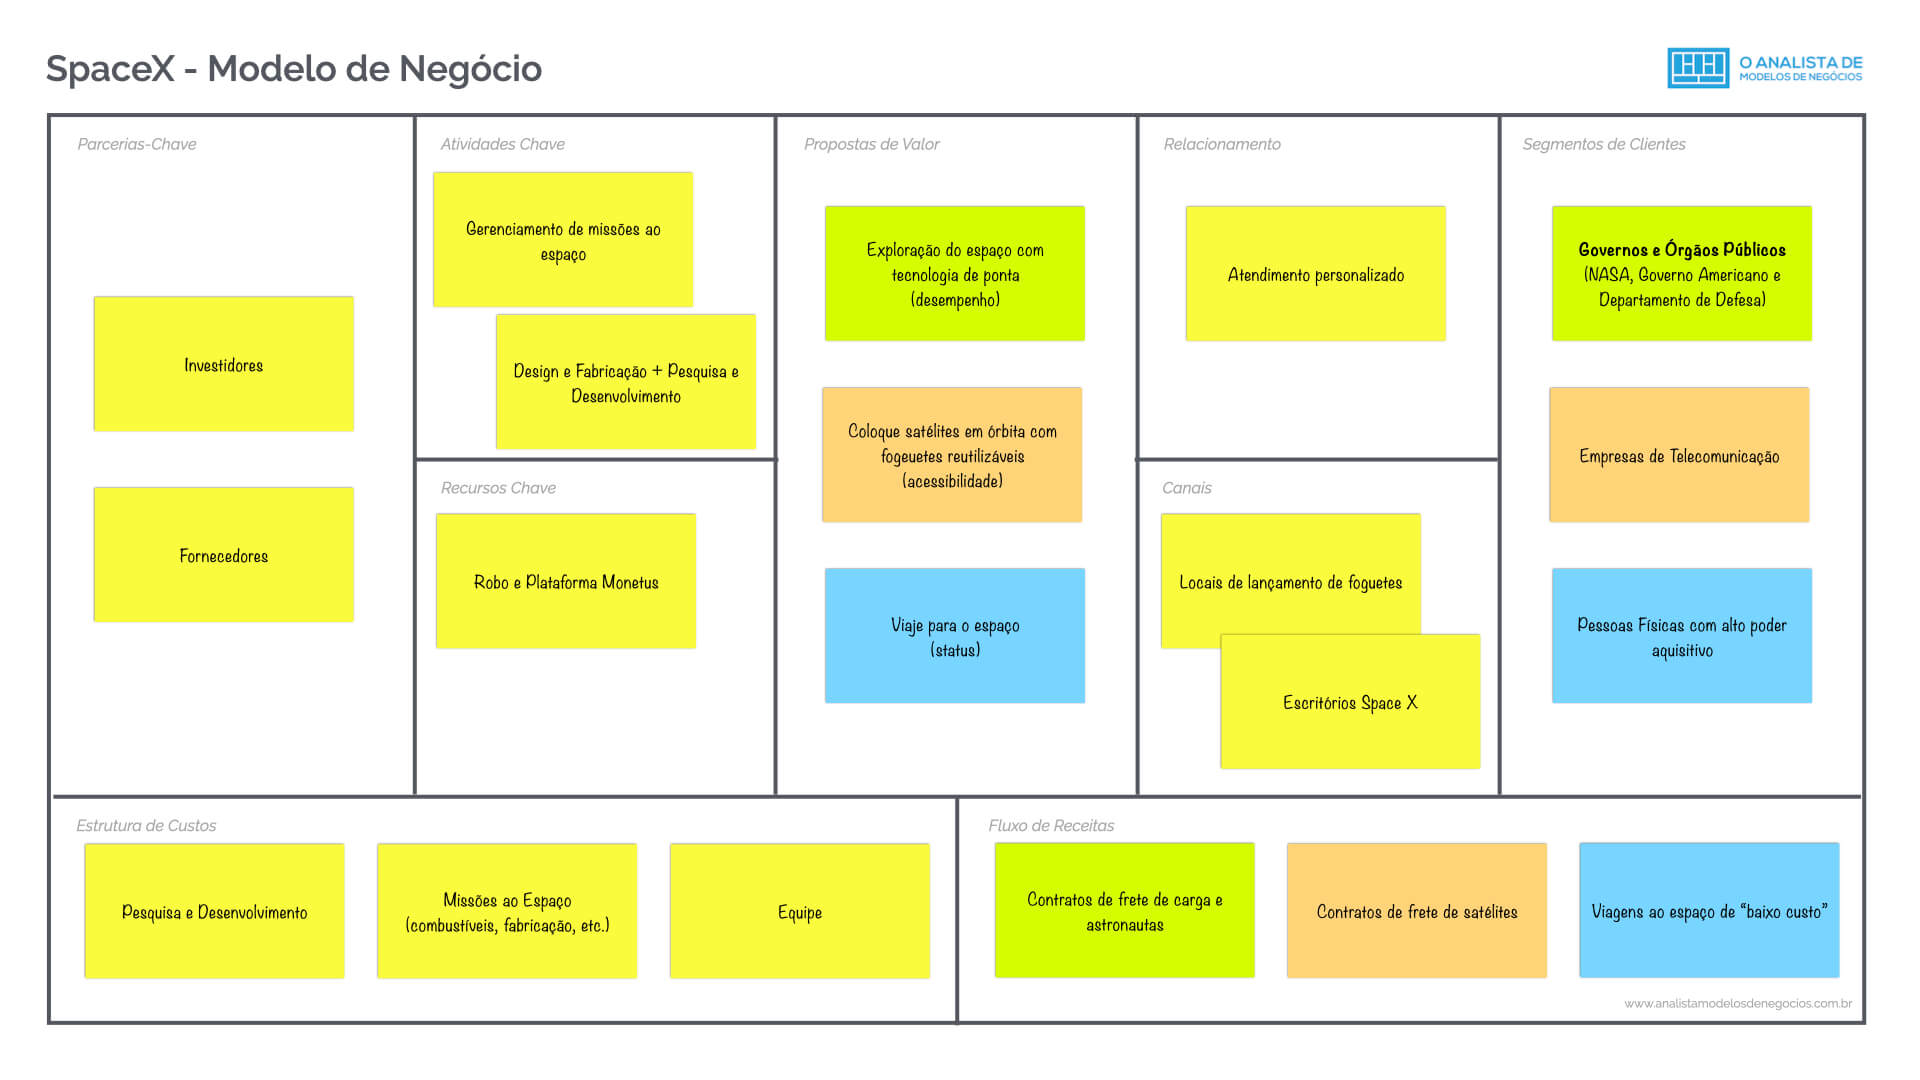 Modelo de Negocio da SpaceX Business Model Canvas